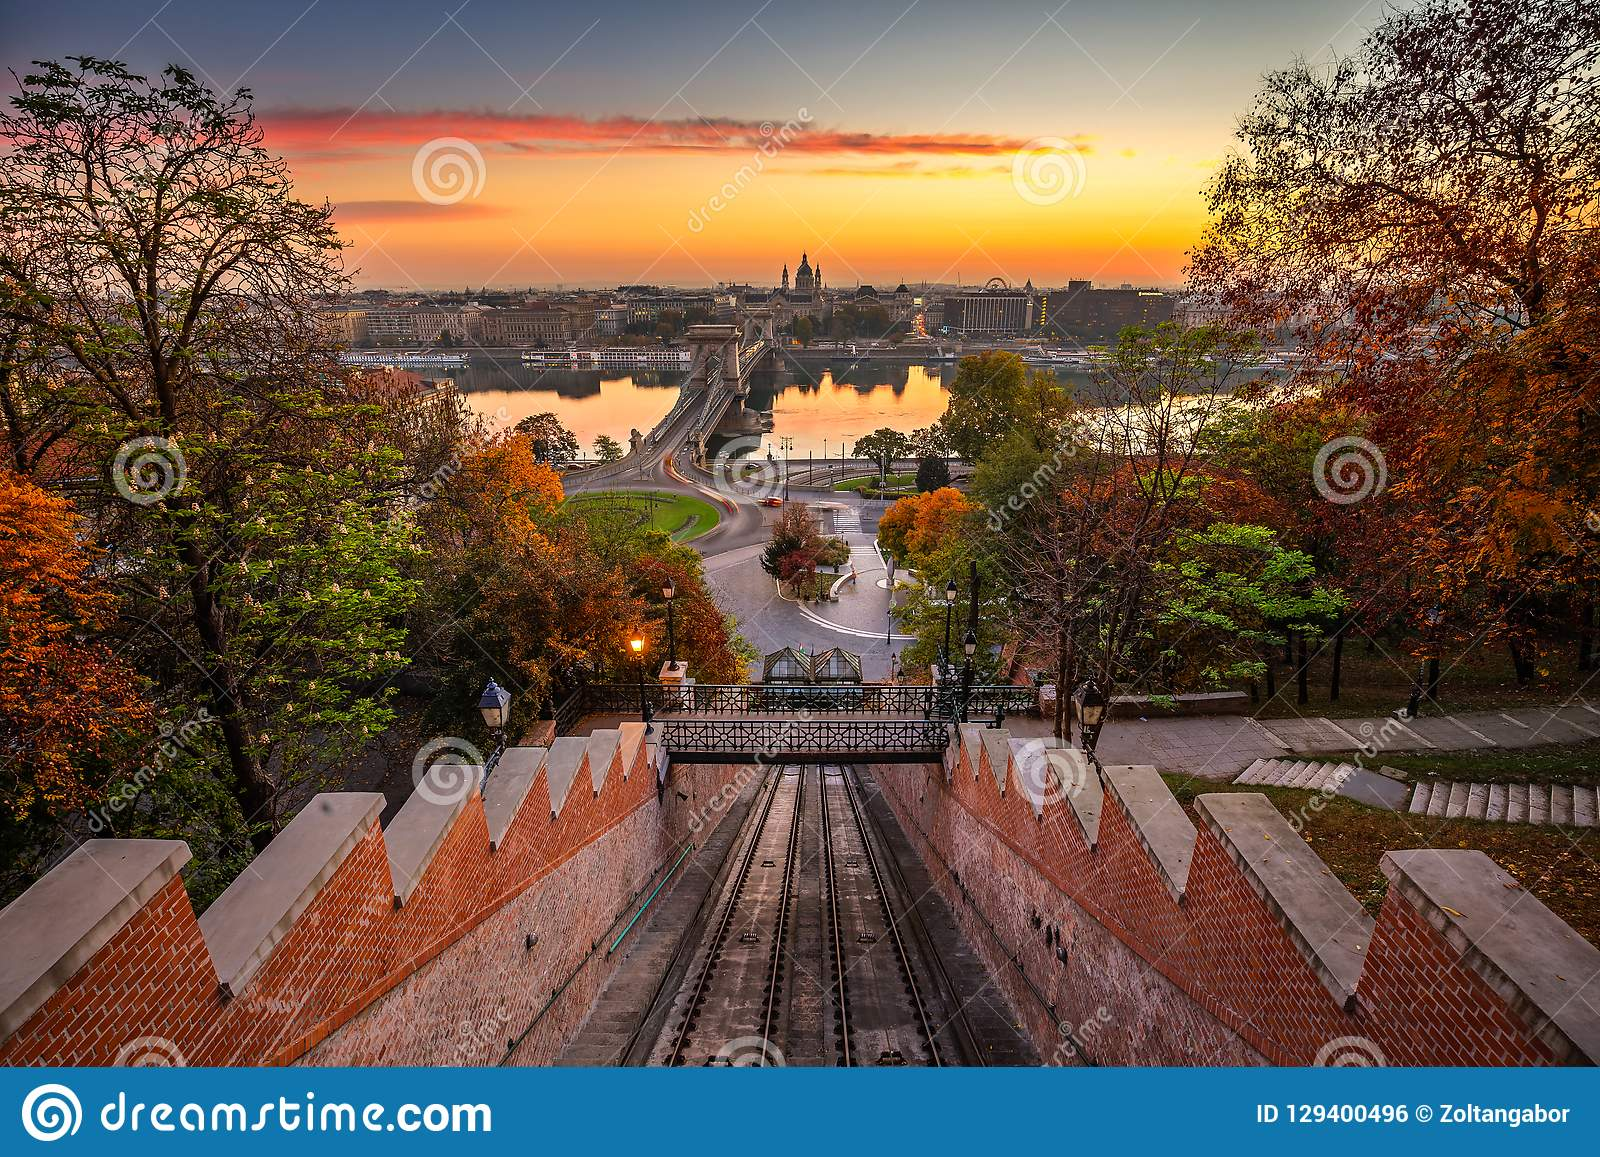 Budapest, Hungary - Autumn in Budapest. The Castle Hill Funicular Budavári Siklo with the Szechenyi Chain Bridge